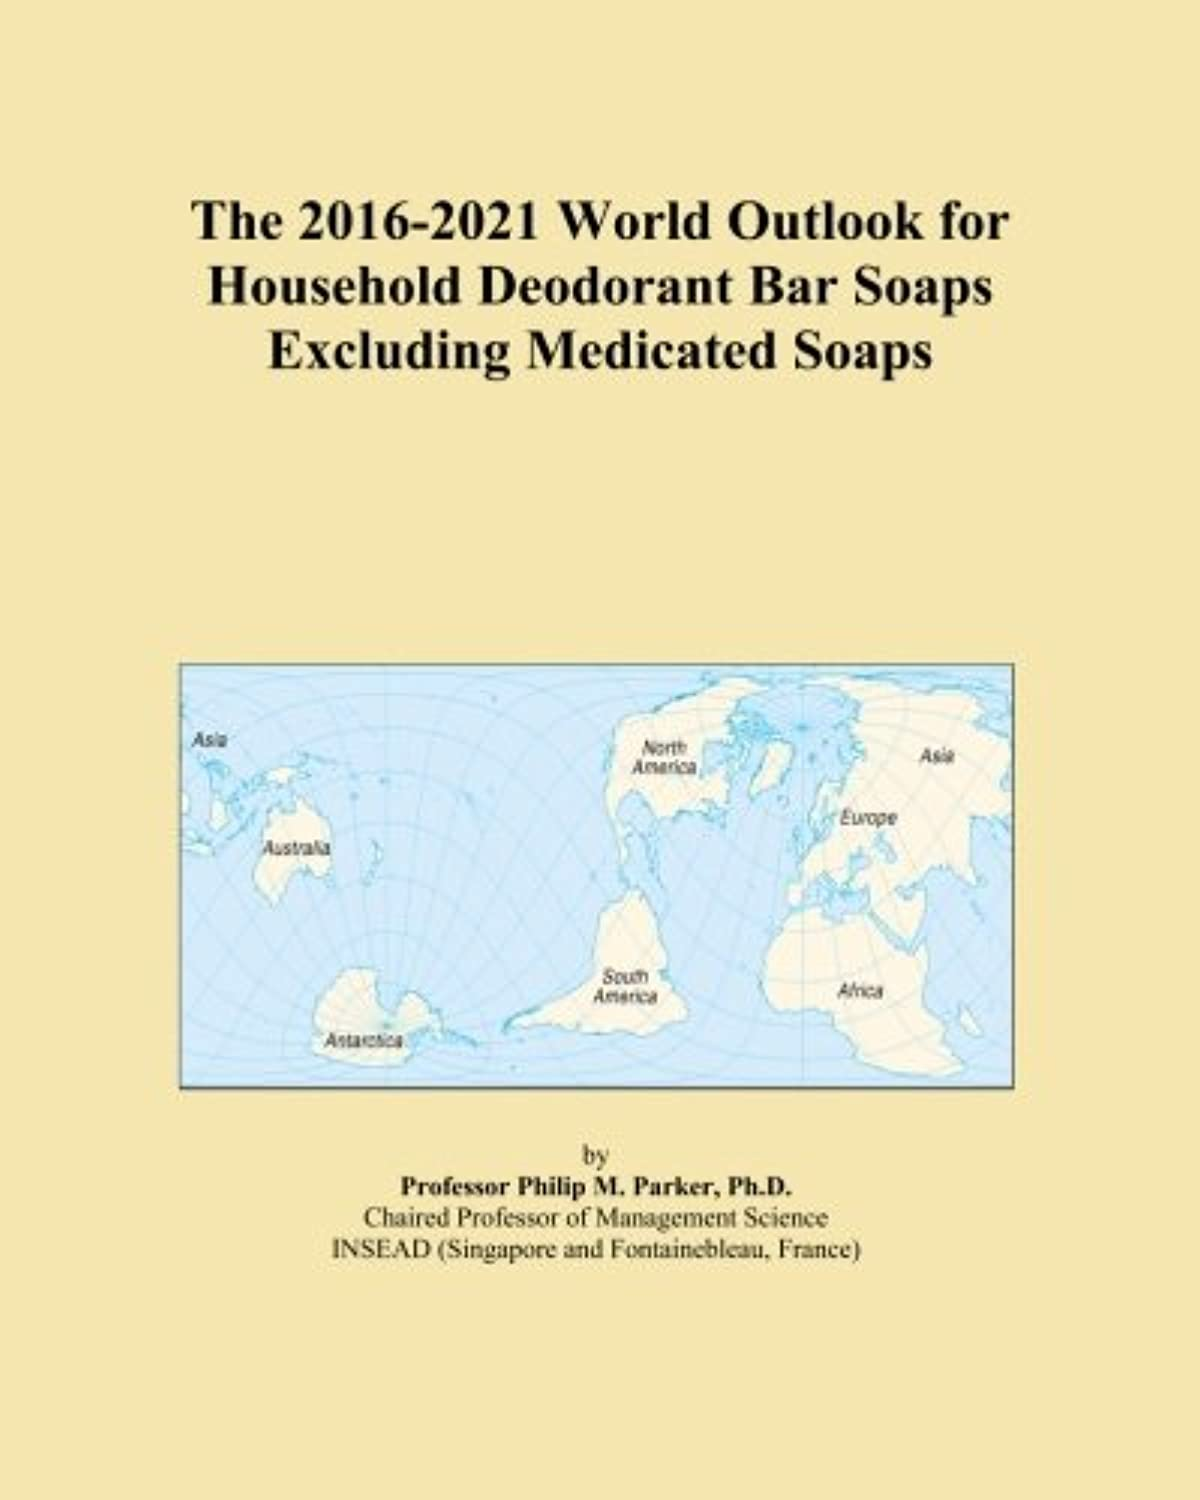 The 2016-2021 World Outlook for Household Deodorant Bar Soaps Excluding Medicated Soaps